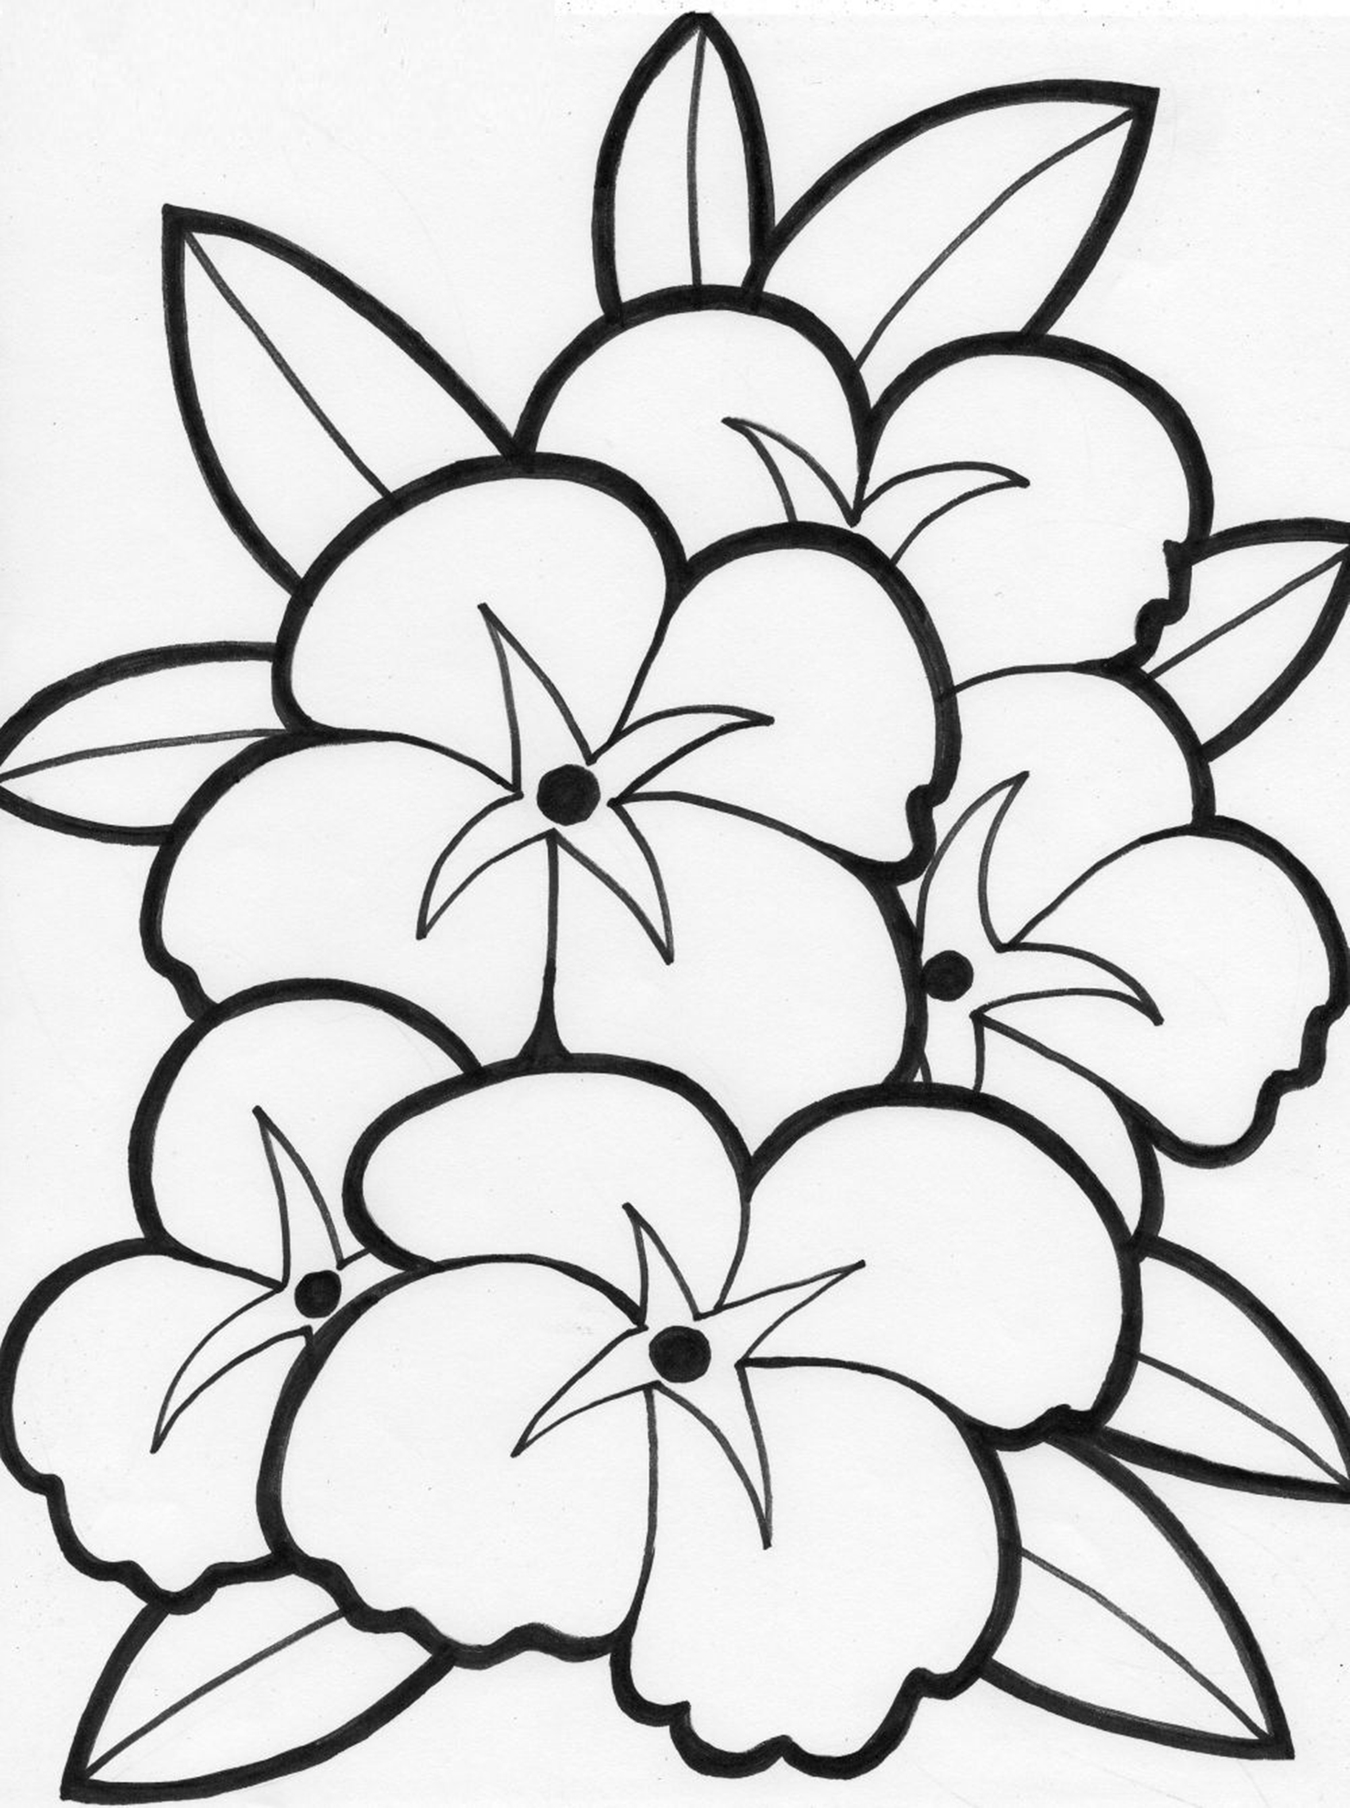 Pictures to colour in of flowers